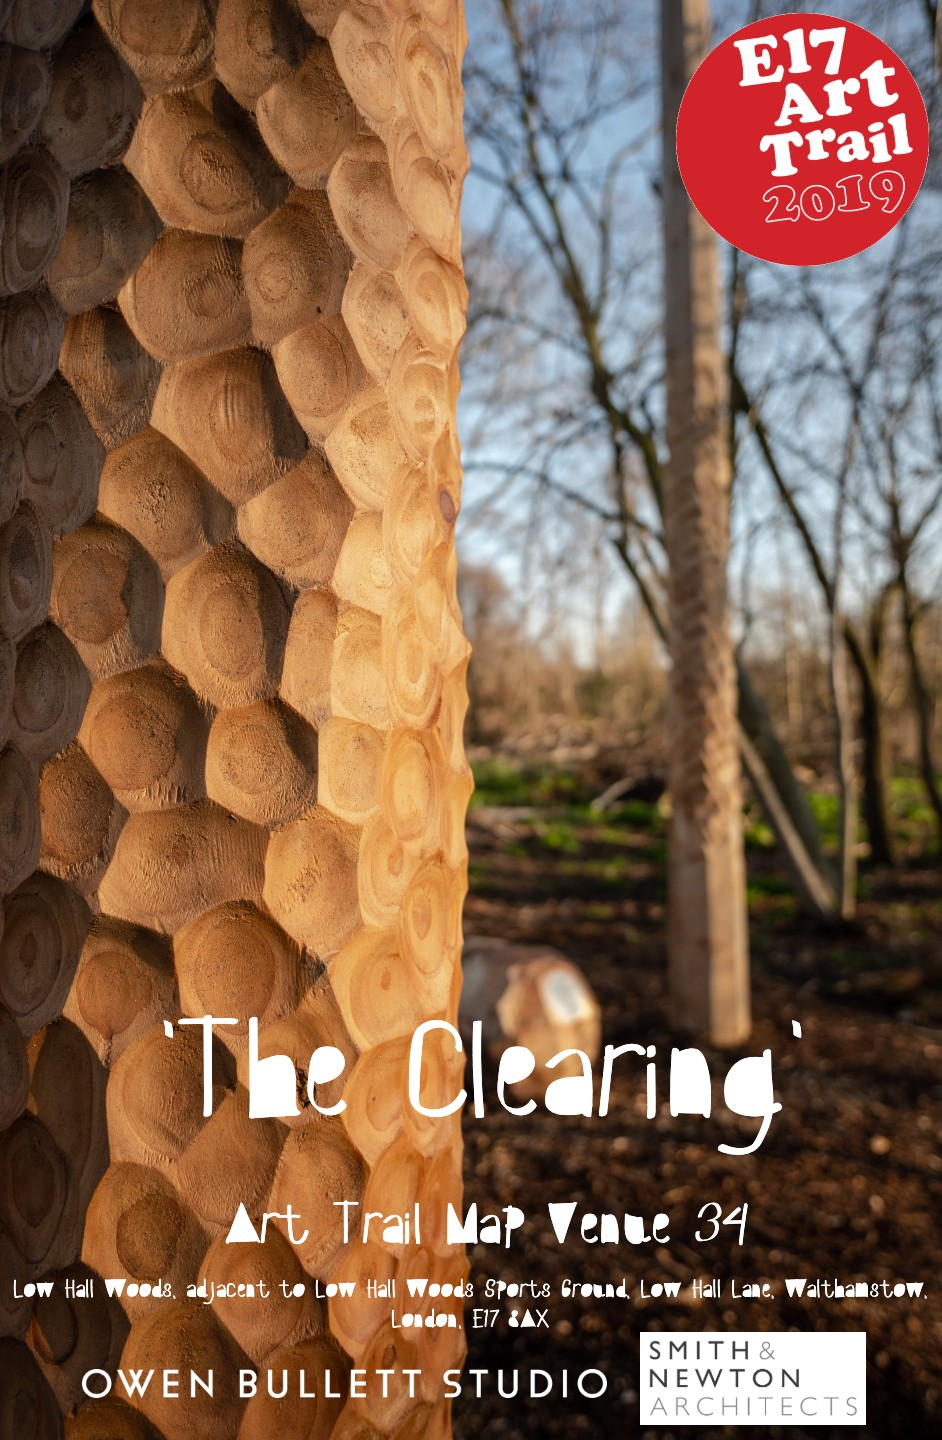 E17 Arts Trail - The Clearing Poster.jpg